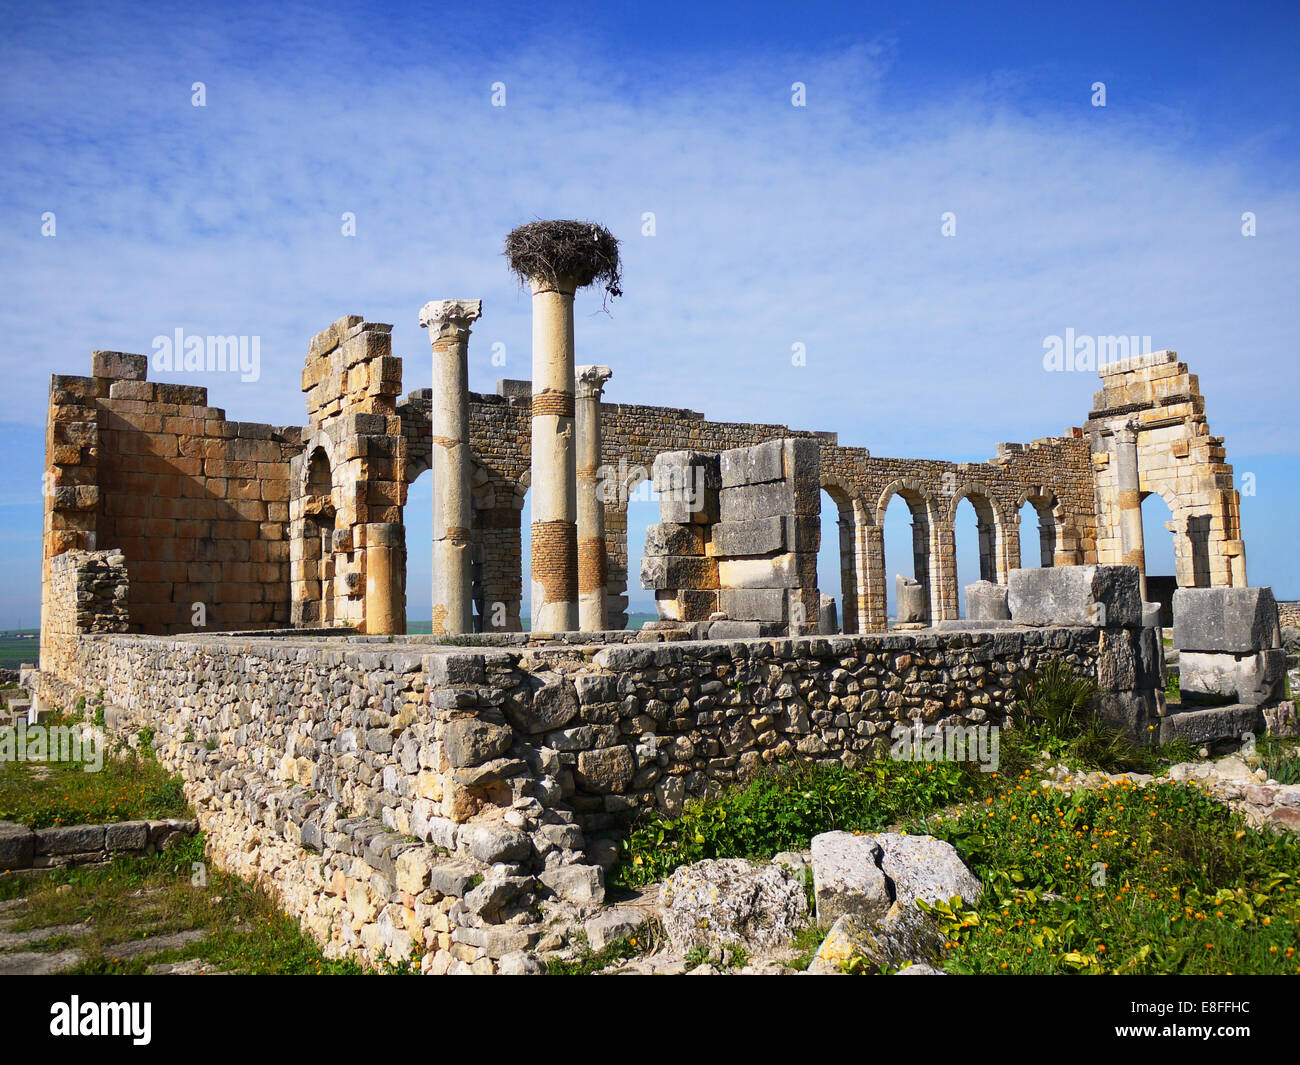 Morocco, Volubilis, Moulay Idriss, Old ruins of ancient Roman town - Stock Image